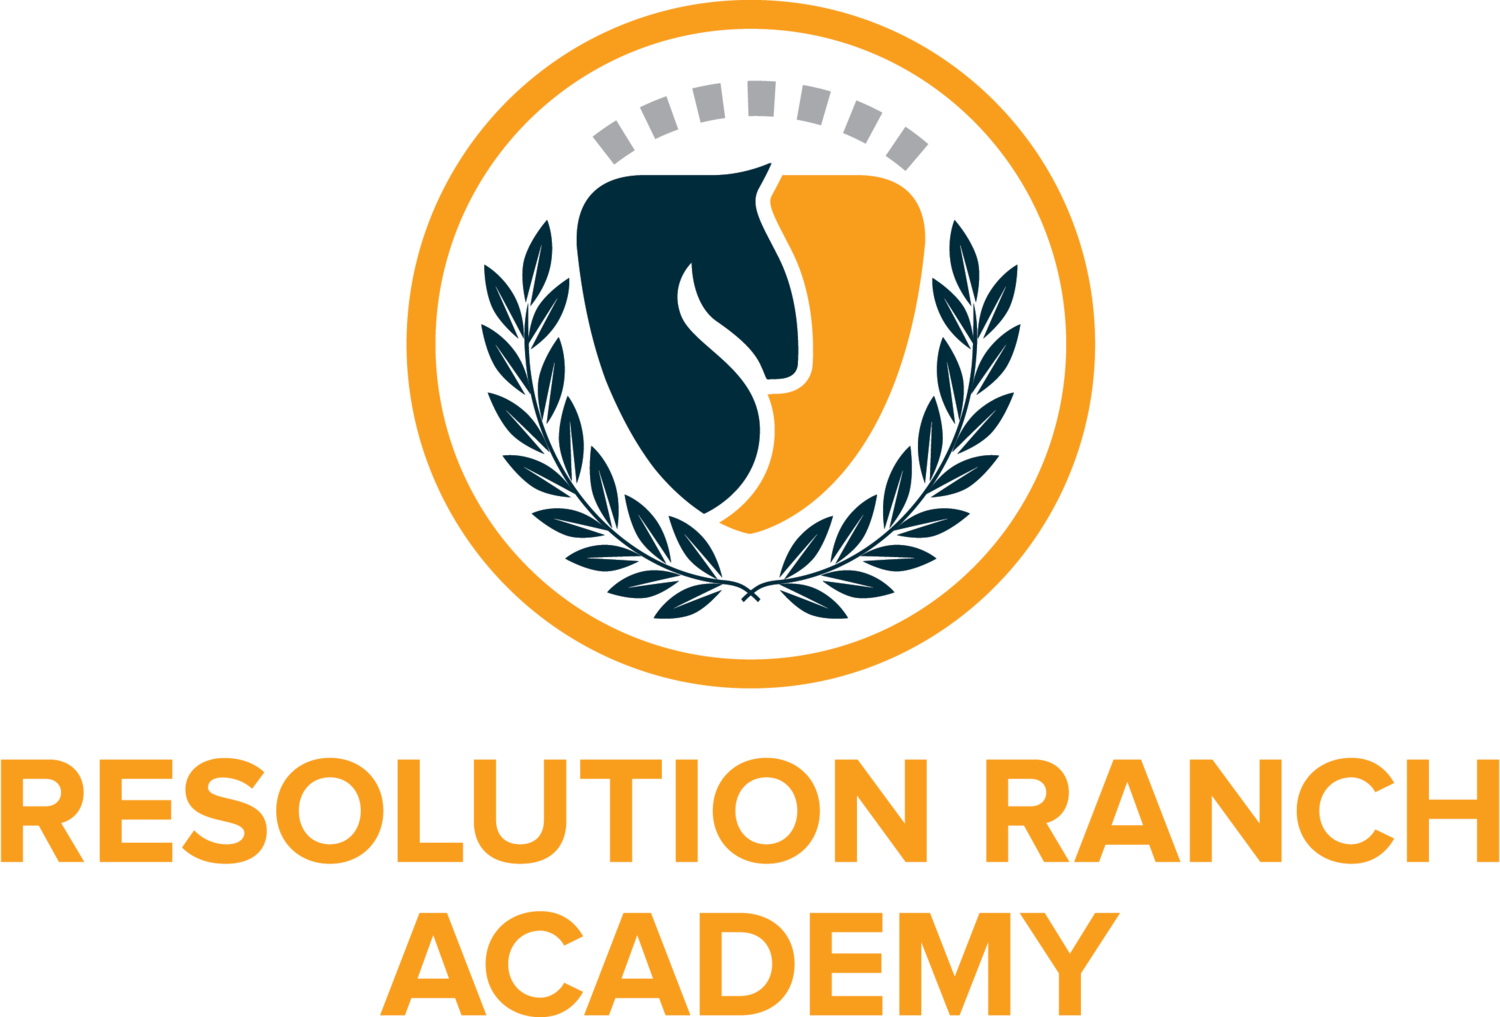 Resolution Ranch Academy